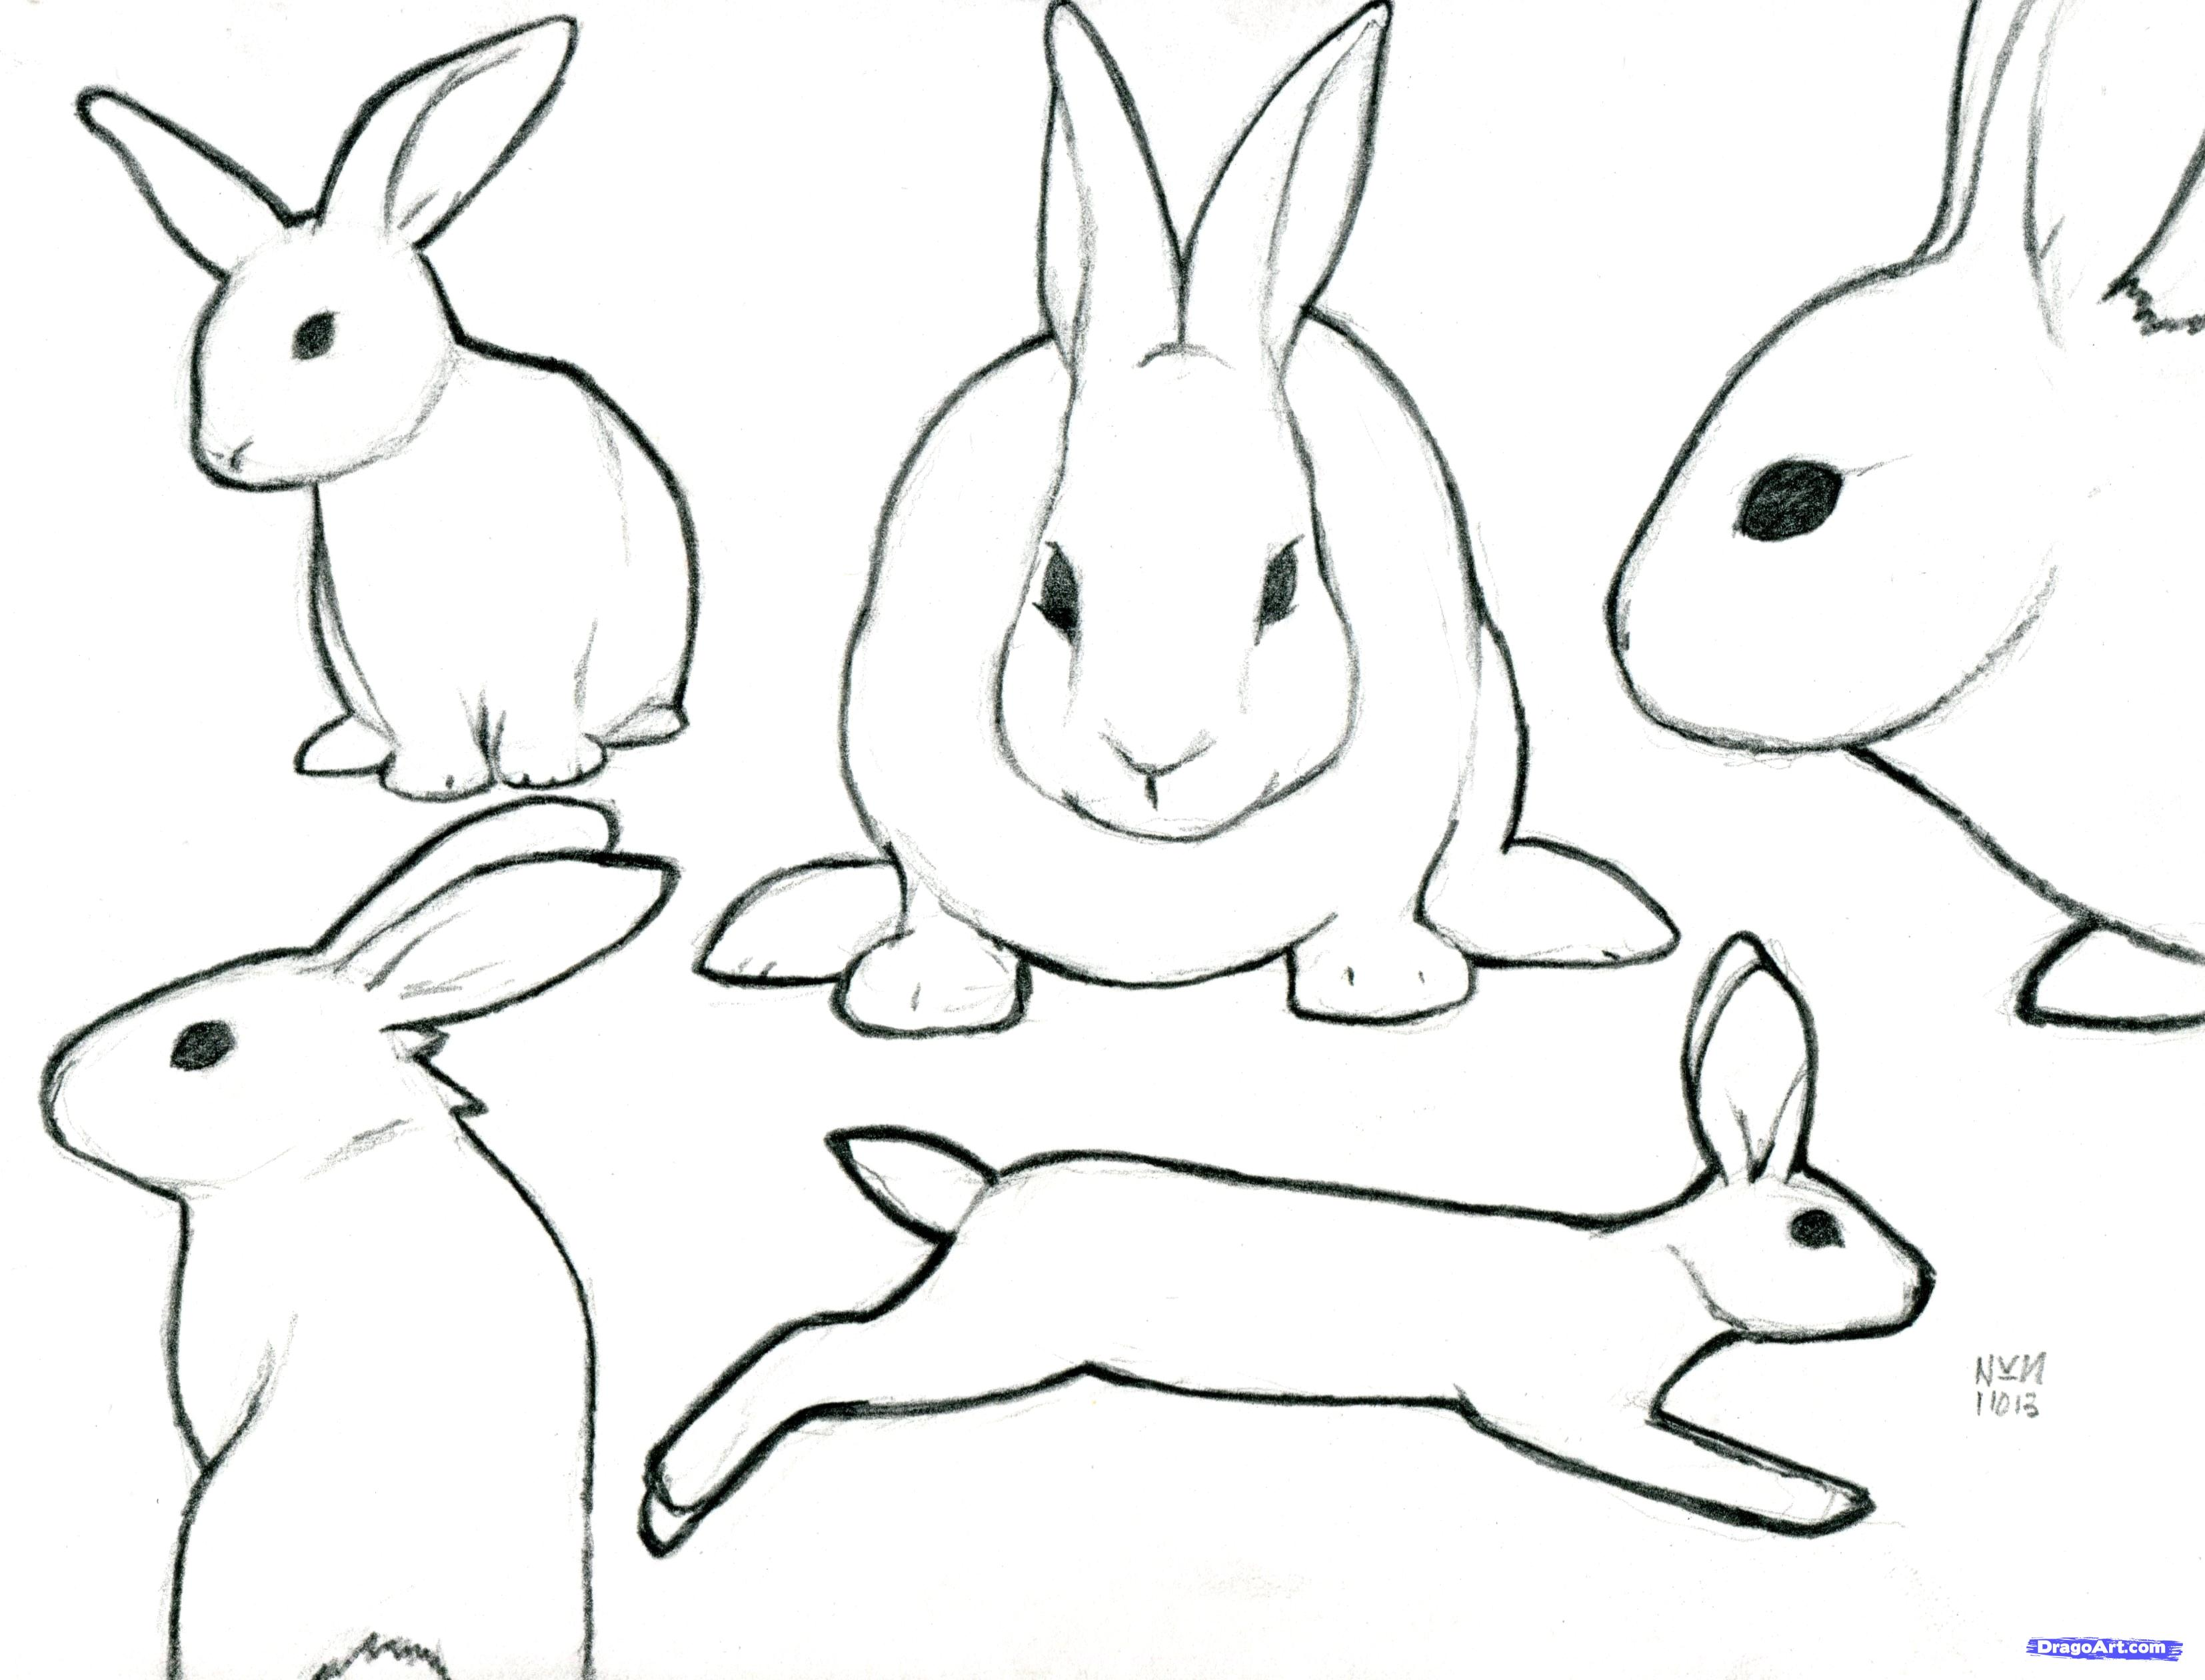 rabbit drawing profile. Free clipart drawings of rabbits in the forest